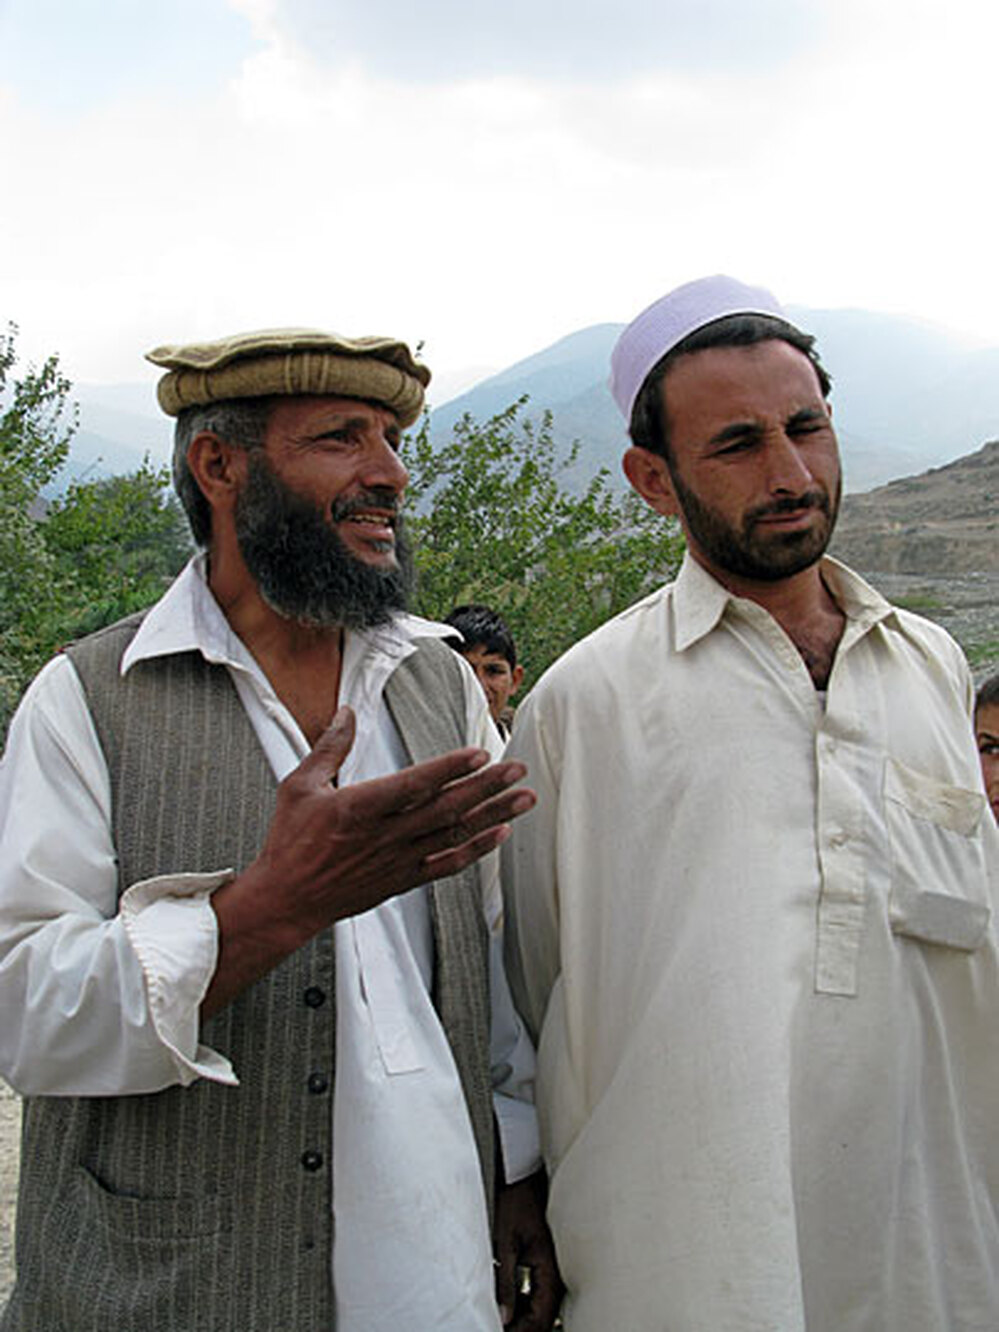 Day 11: Unreached People Group - Pashtun of Afghanistan